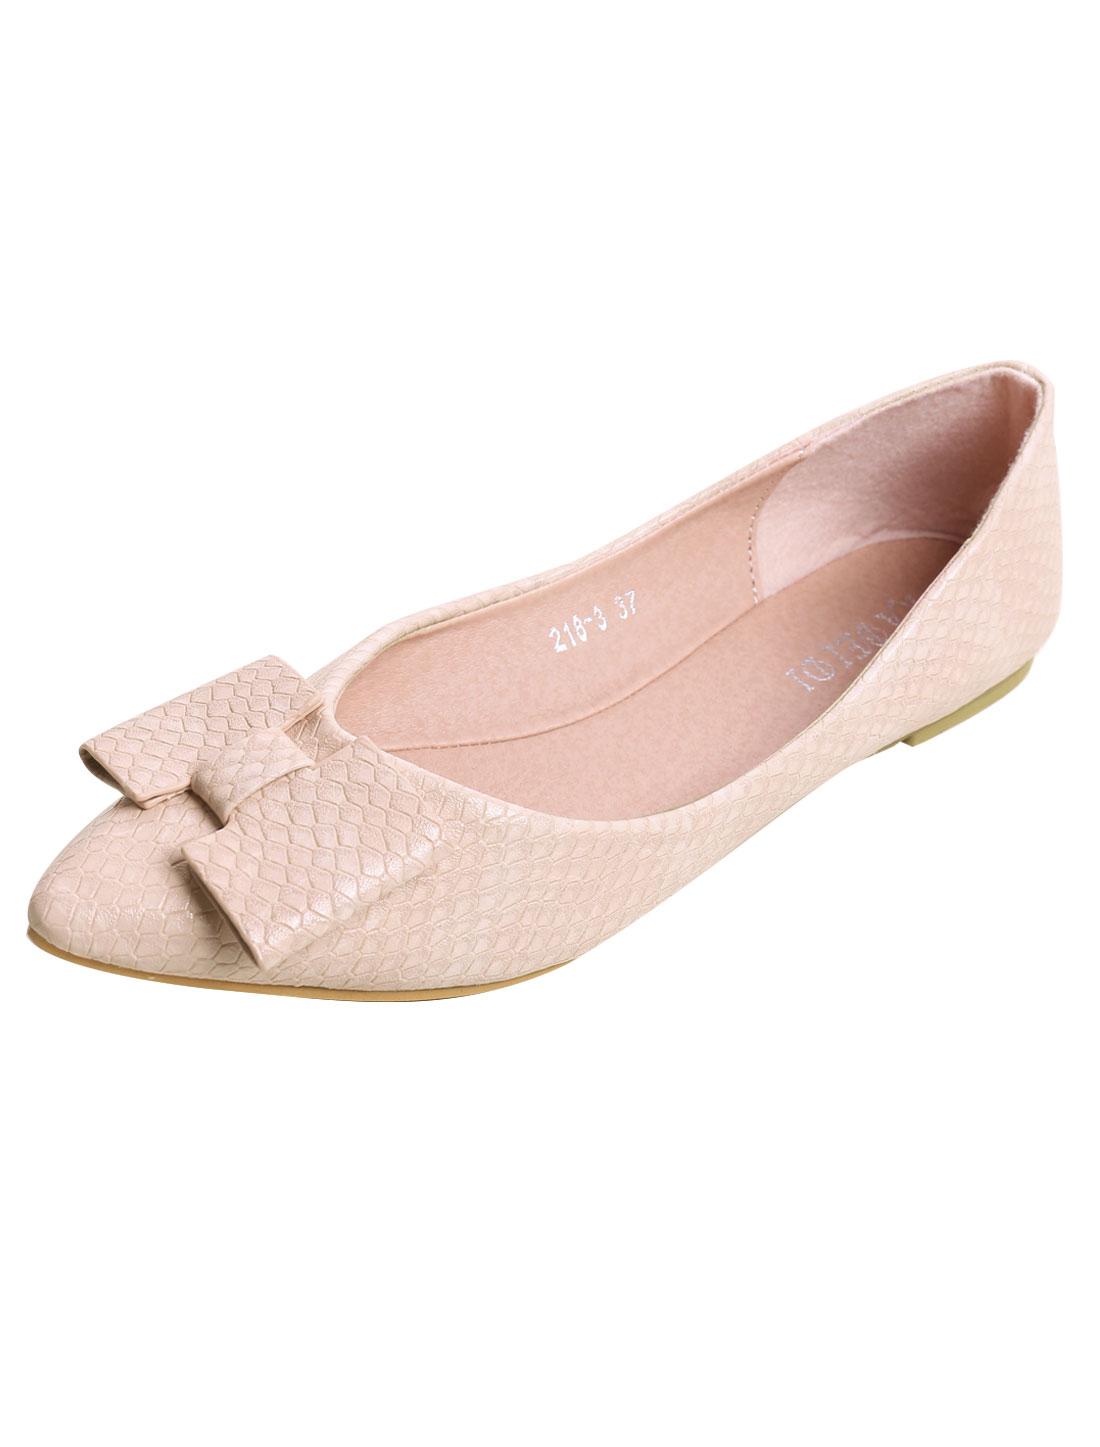 Lady Snake-effect Faux Leather Bow Flat Shoes Beige US 7.5